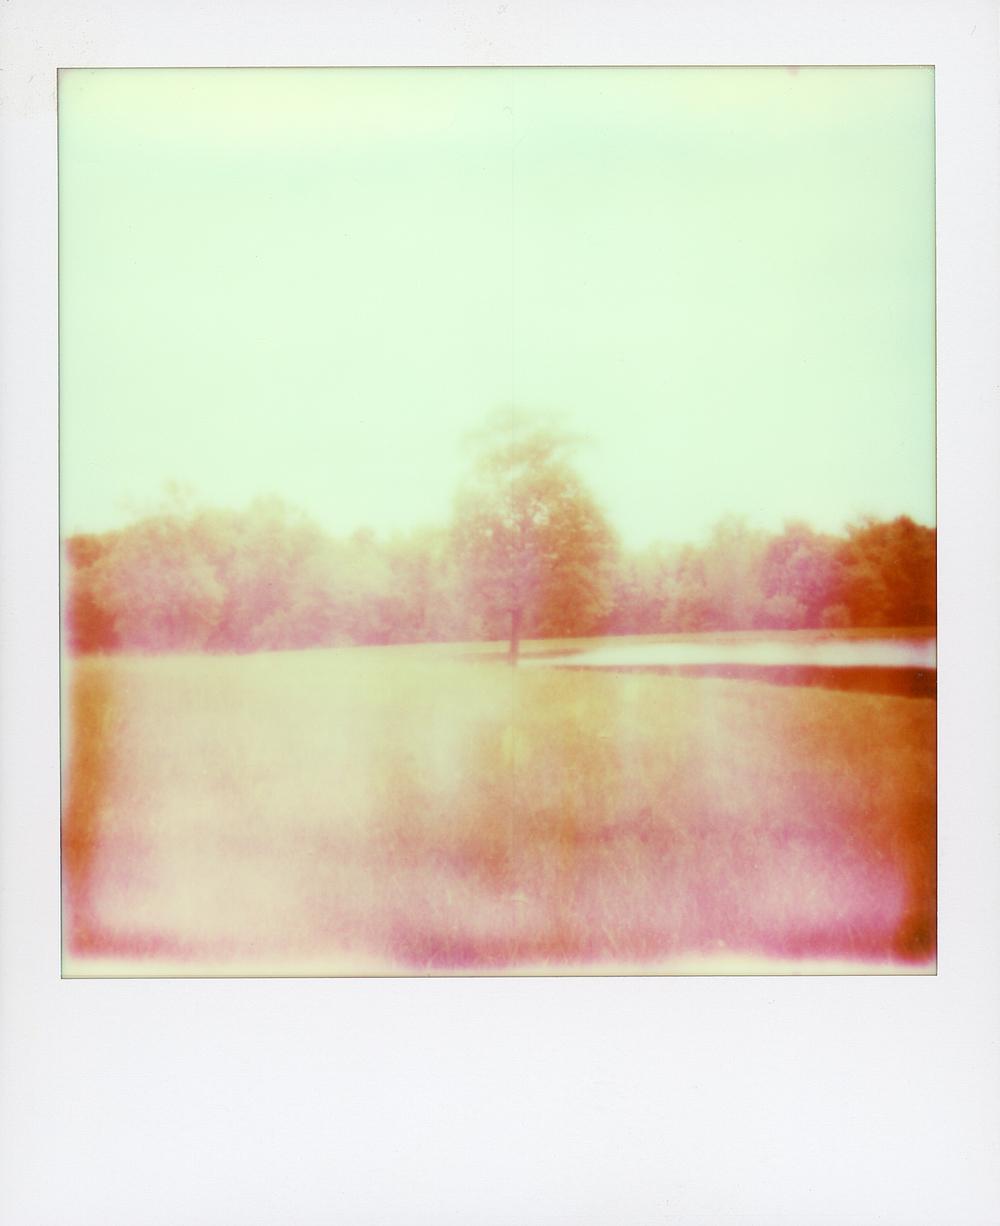 polaroid summer 13001.jpg